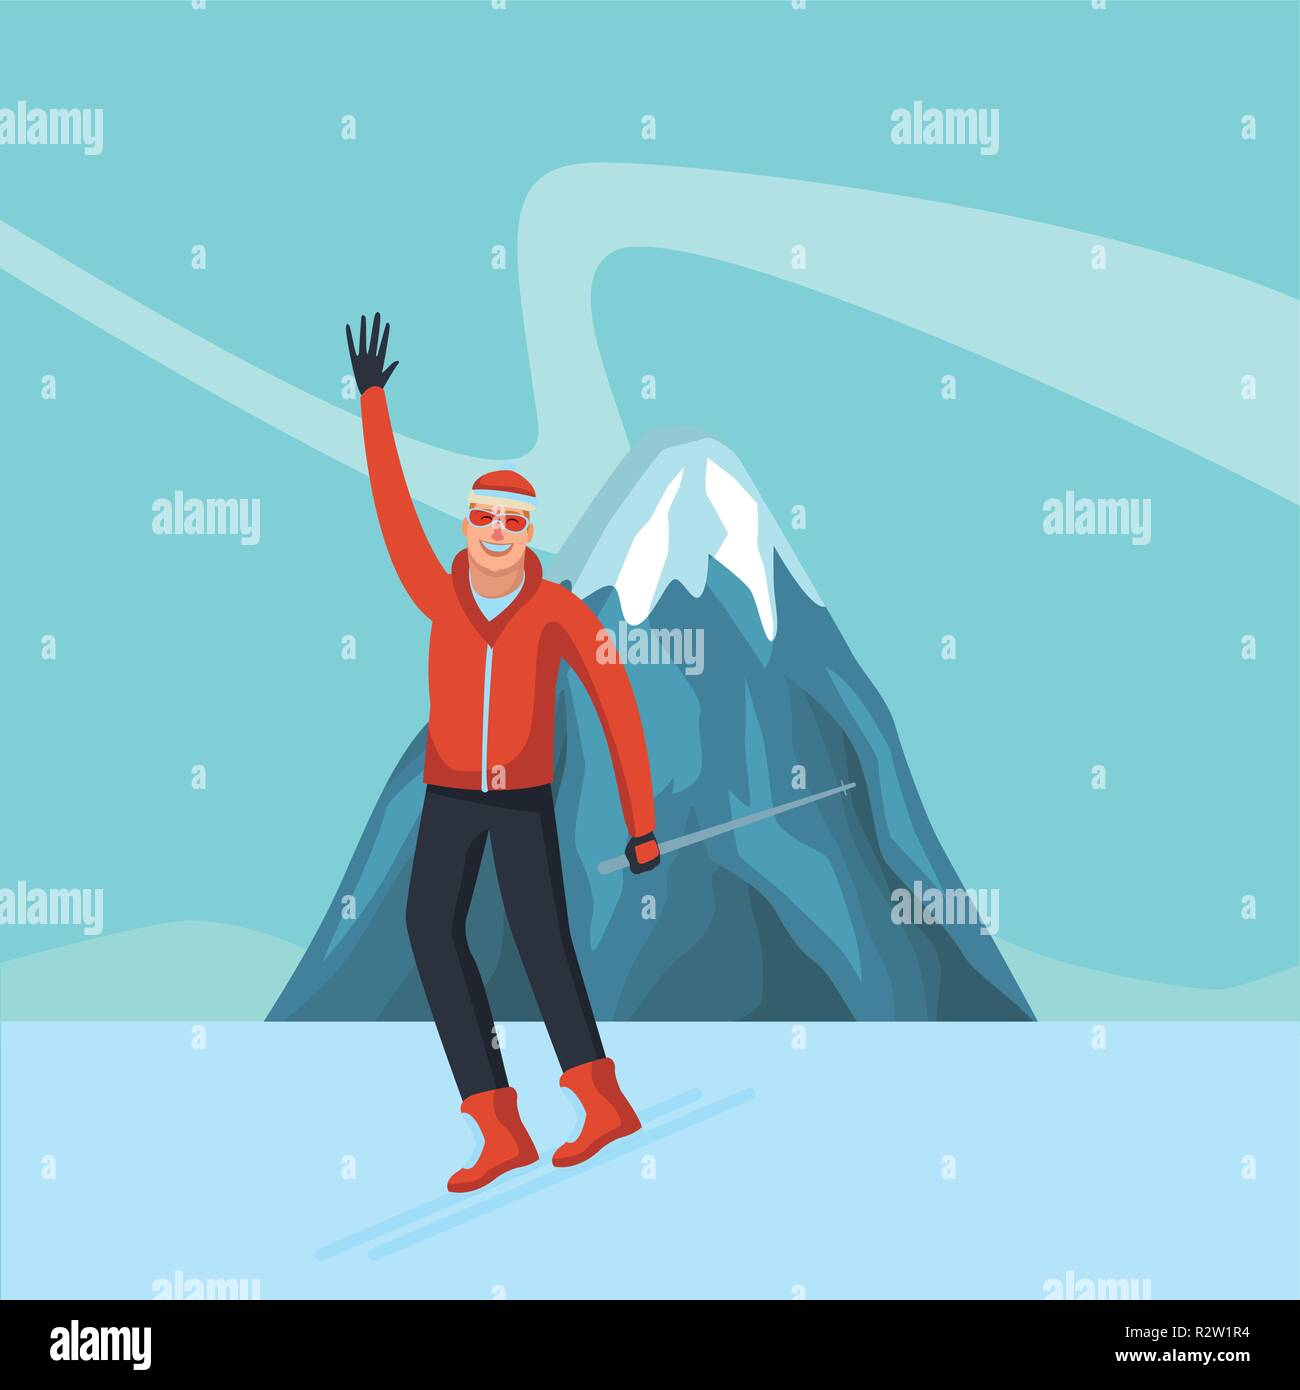 0ce0ca99c3 Happy man in winter clothes over mountain with snow vector illustration  graphic design